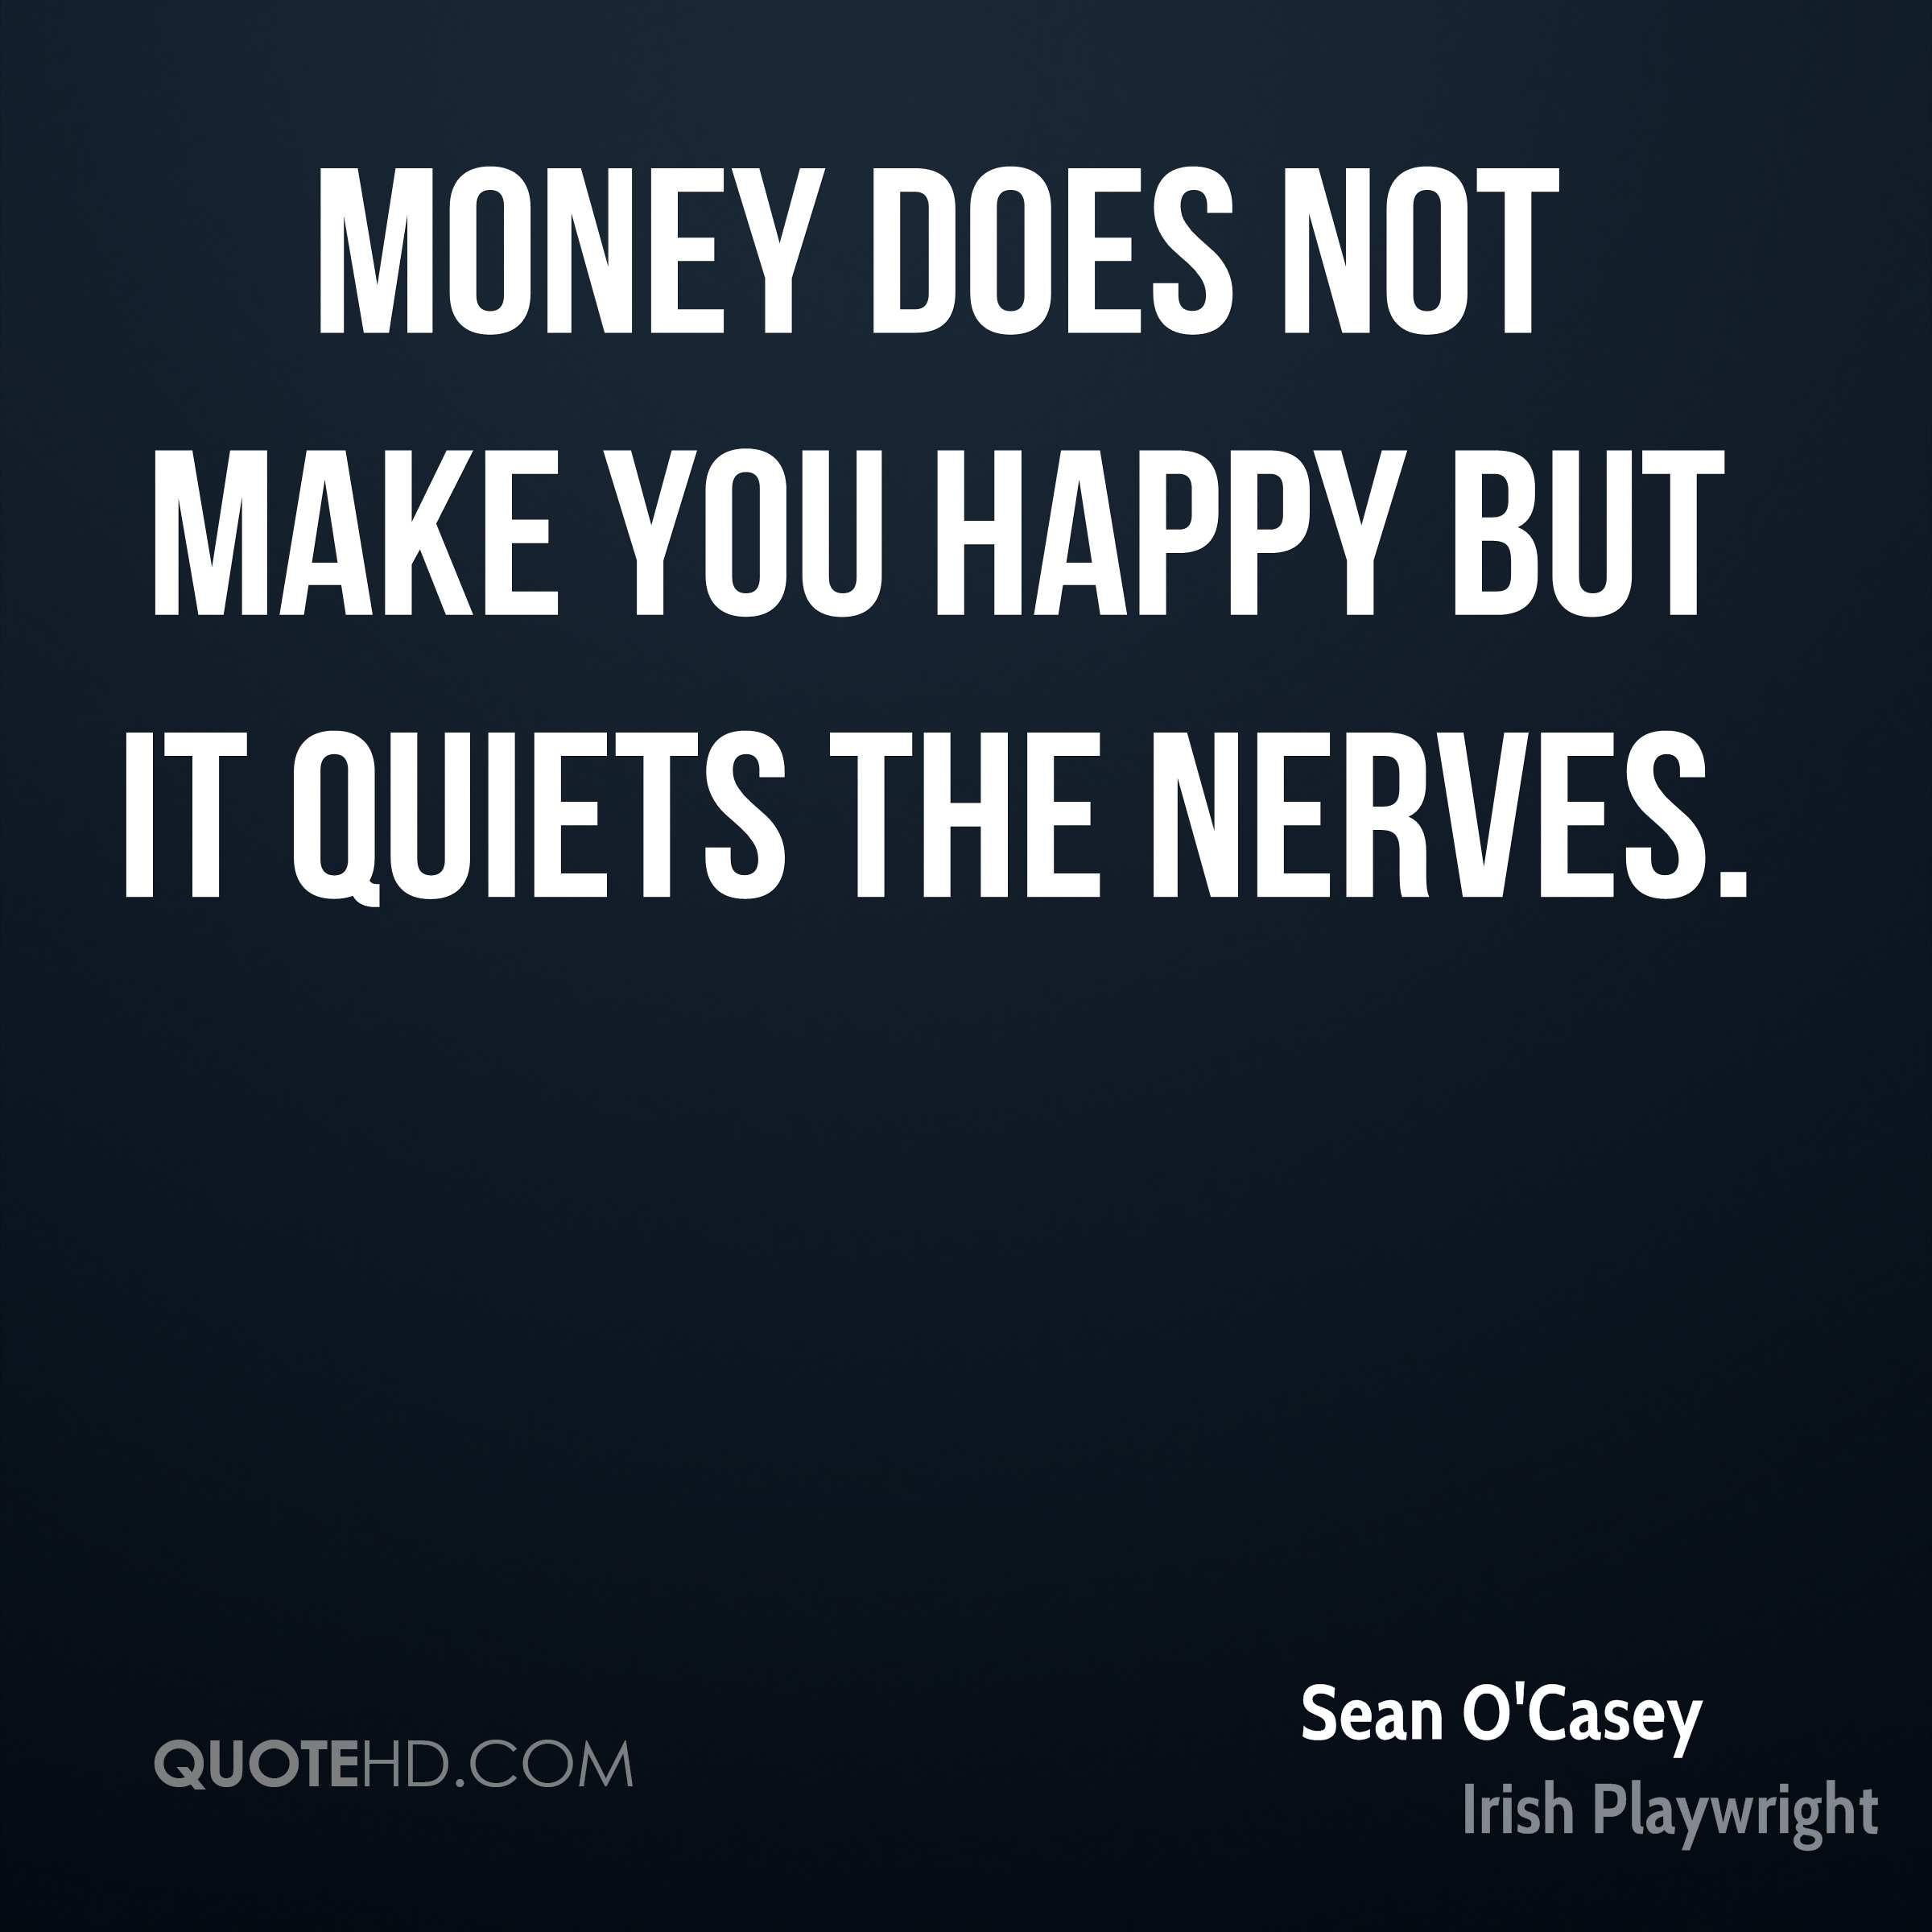 Quotes To Make You Happy Sean O'casey Quotes  Quotehd